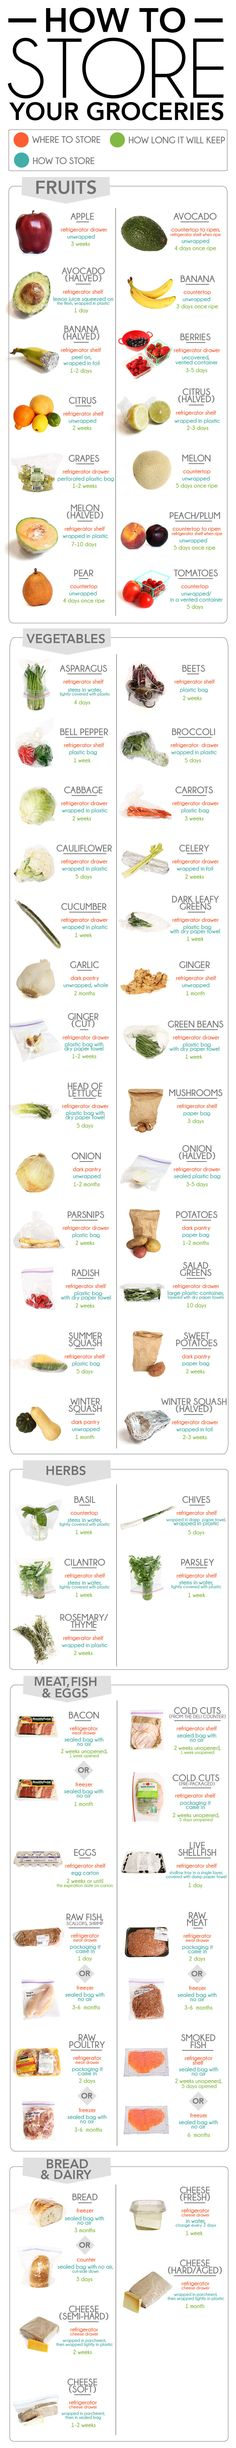 How To Store Your Groceries #eatclean #recipe #clean #recipes #healthy